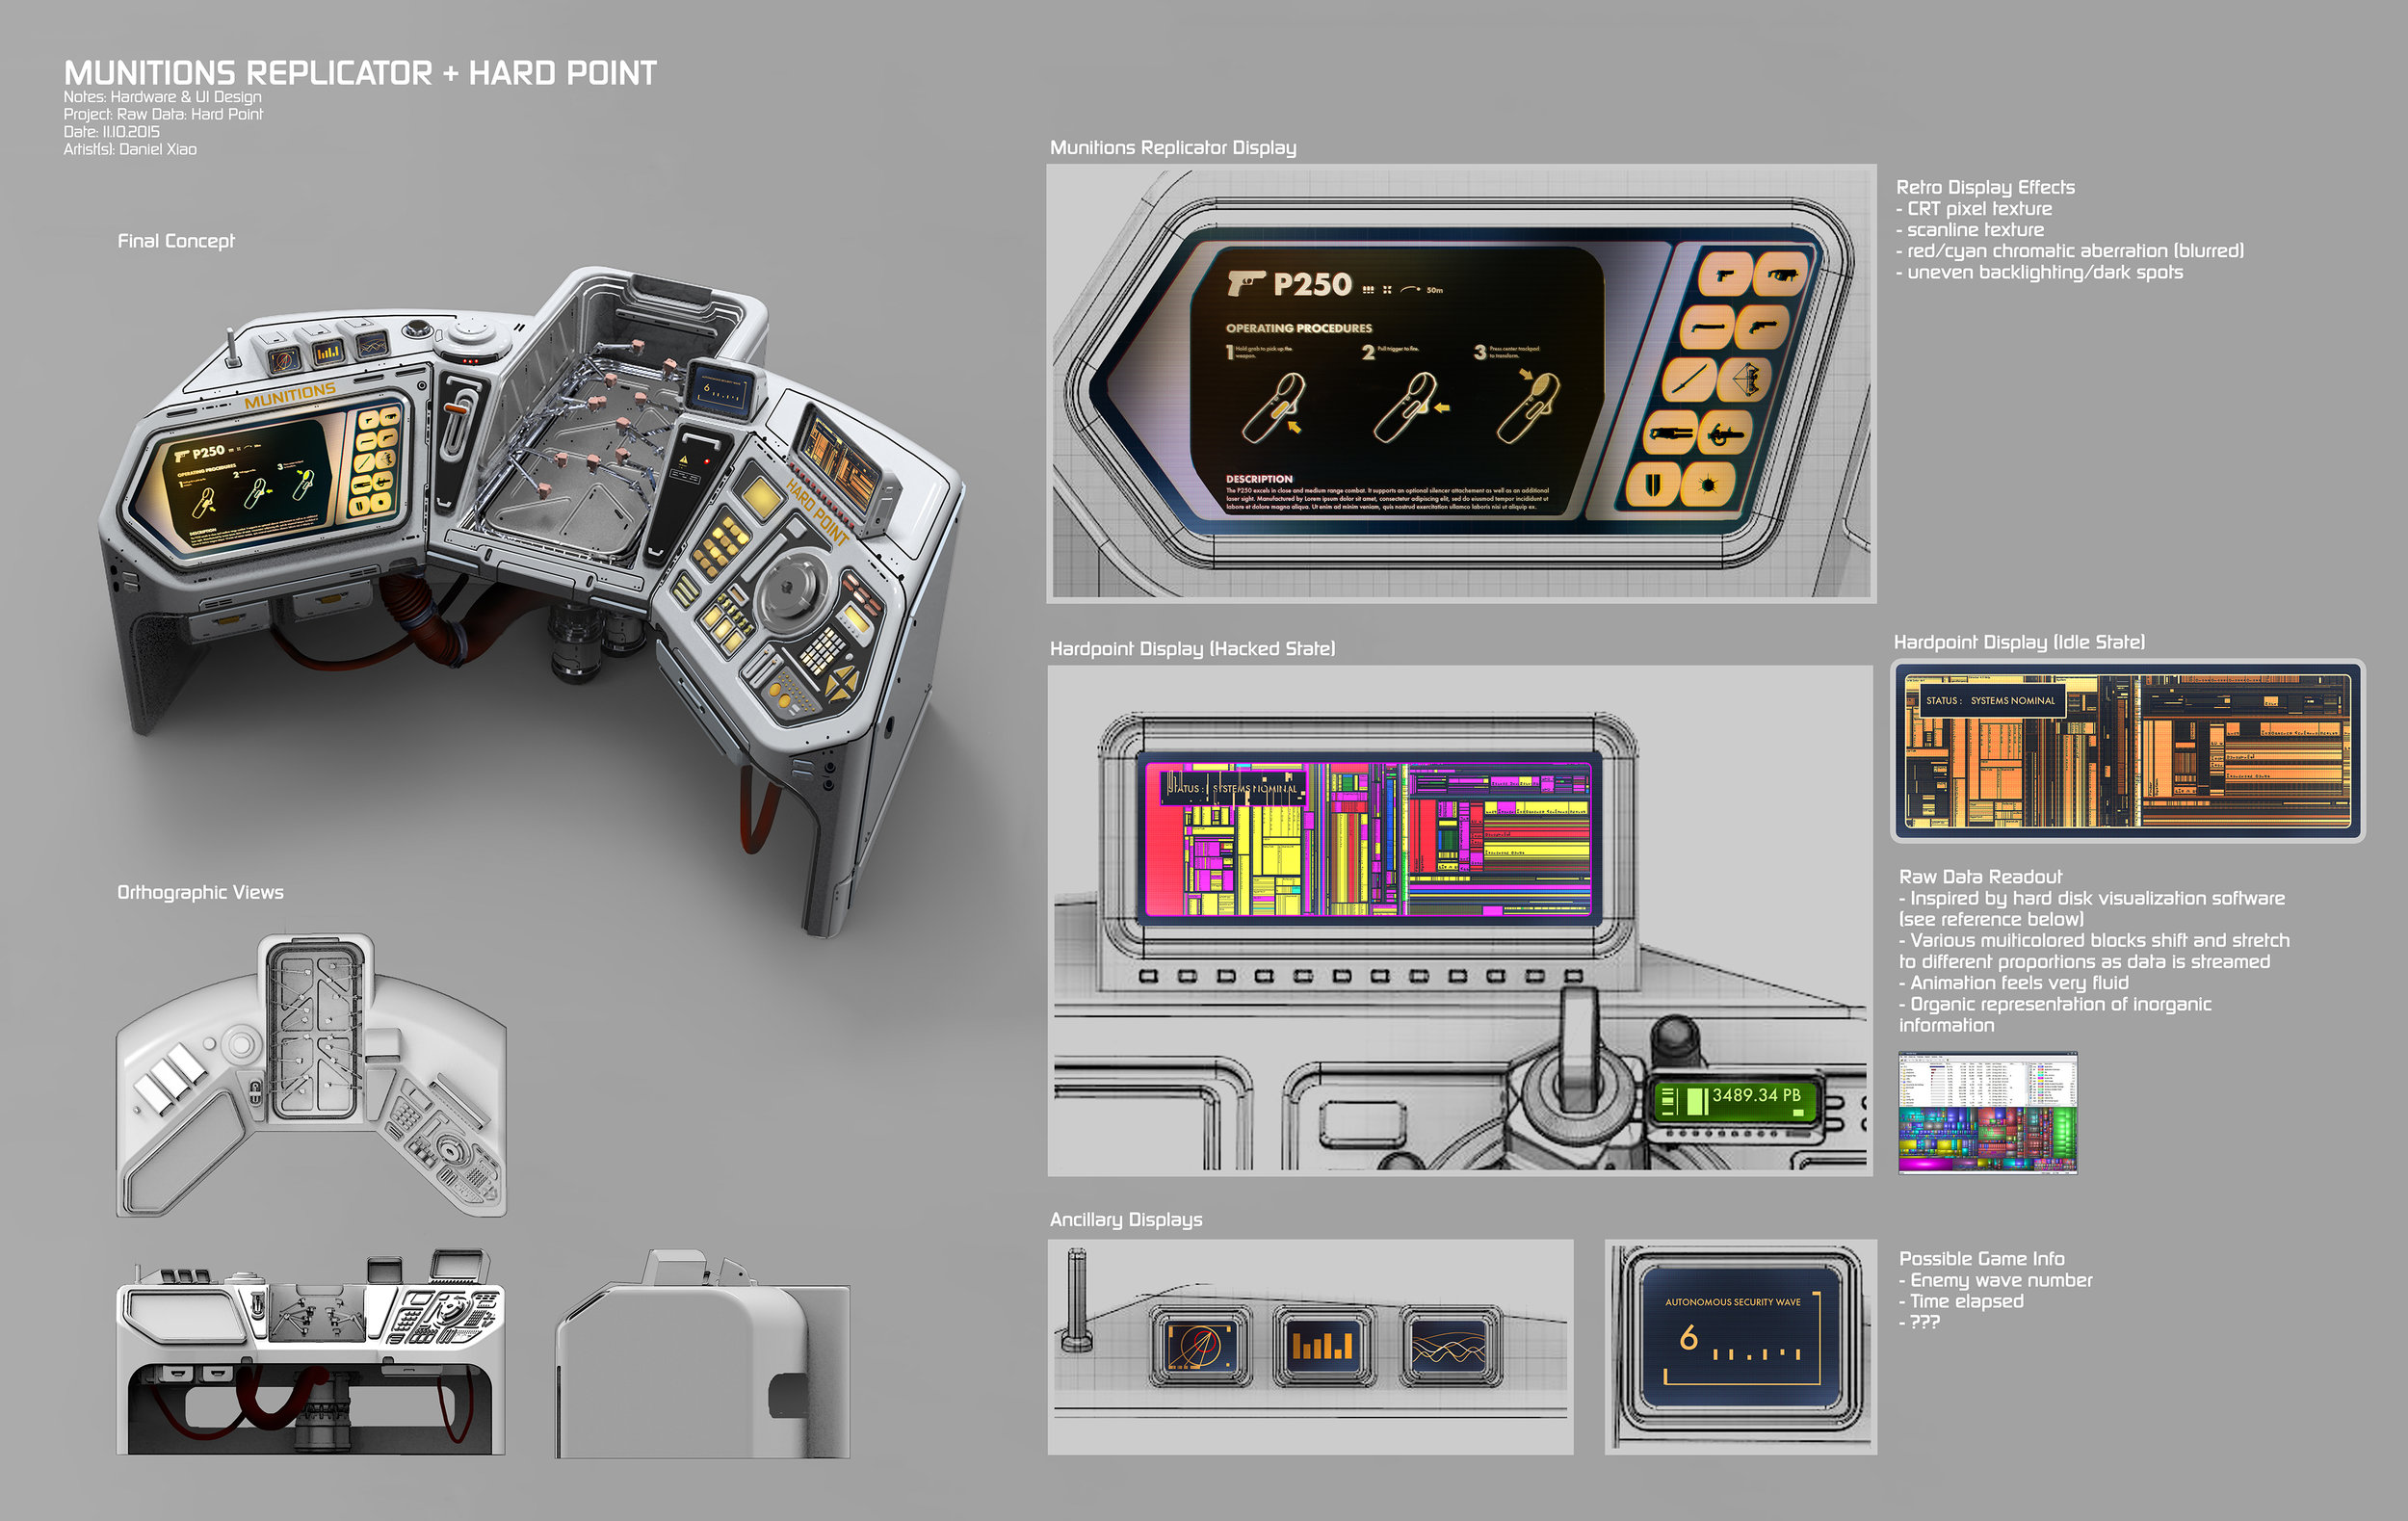 Concept art for the Operations Terminal. I built the base mesh in Fusion 360 then exported and rendered in Keyshot and Photoshop.  The original styling for the touch screen UI interface was inspired by the LCARS design from TNG.